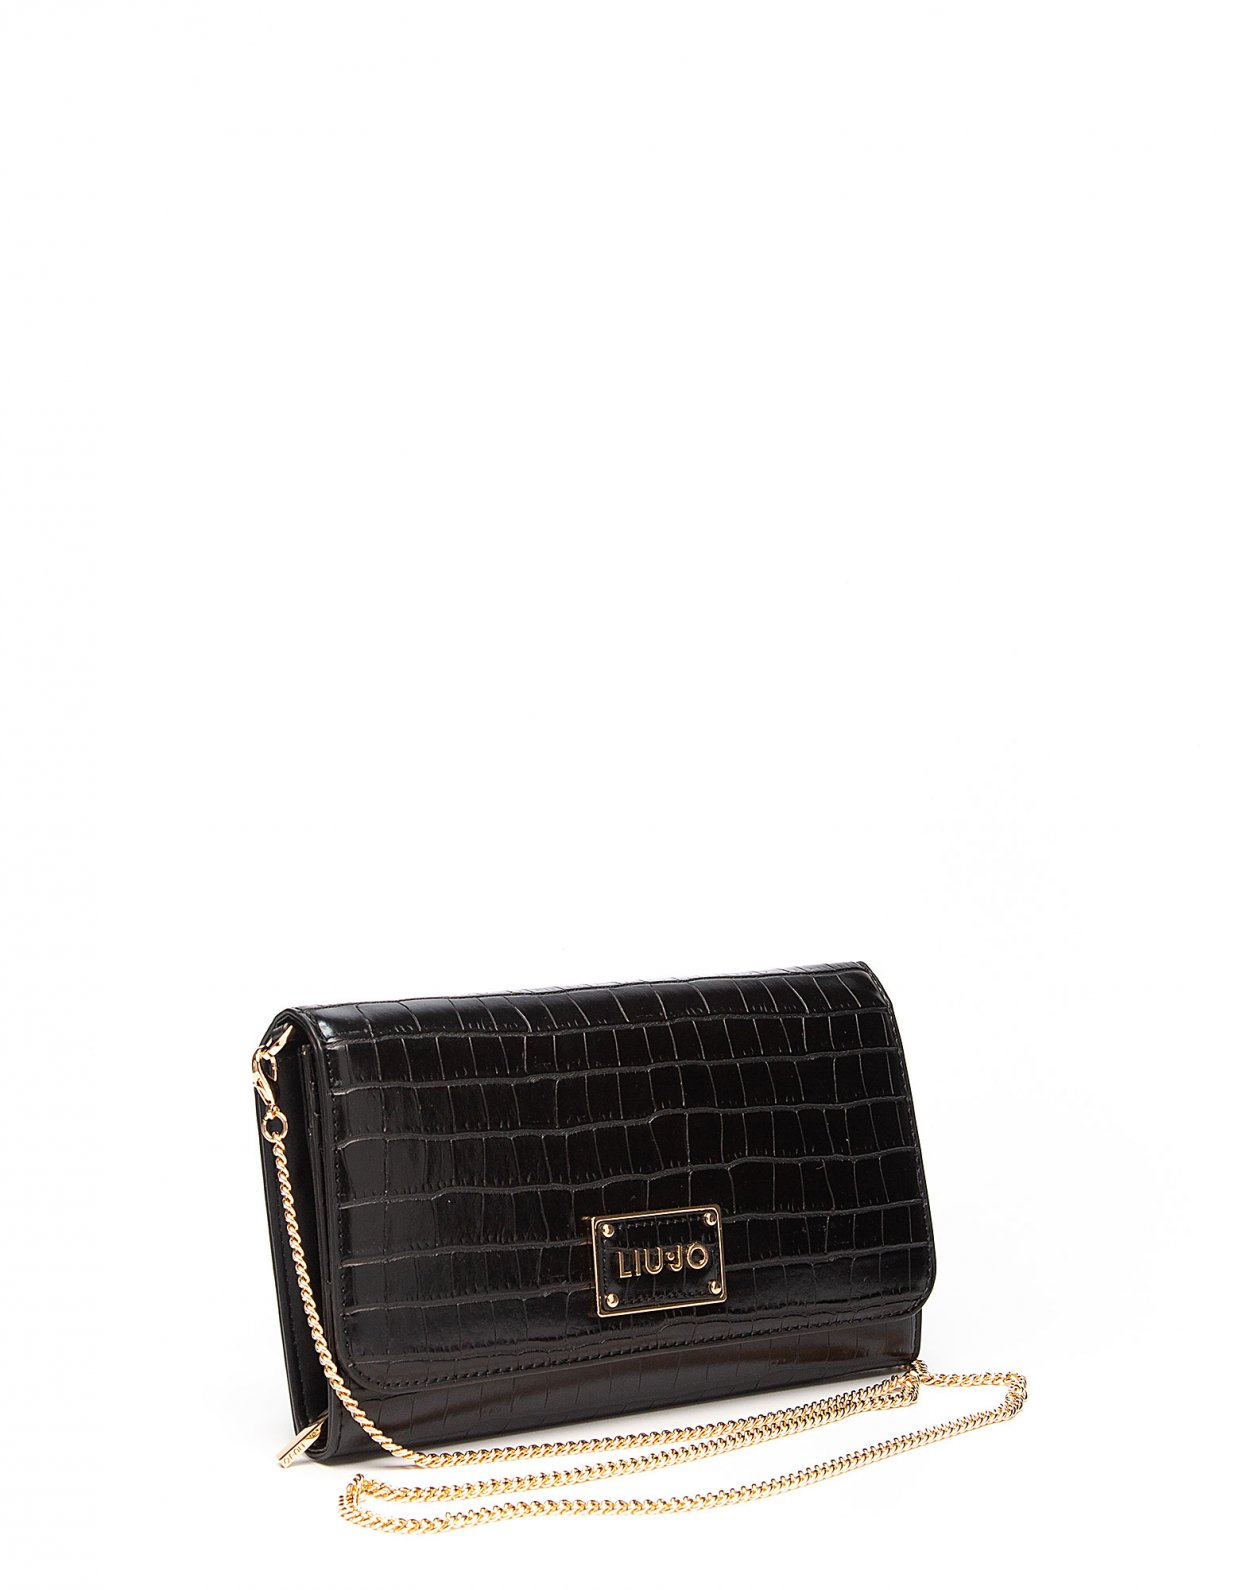 Liu Jo Crossbody bag croco black